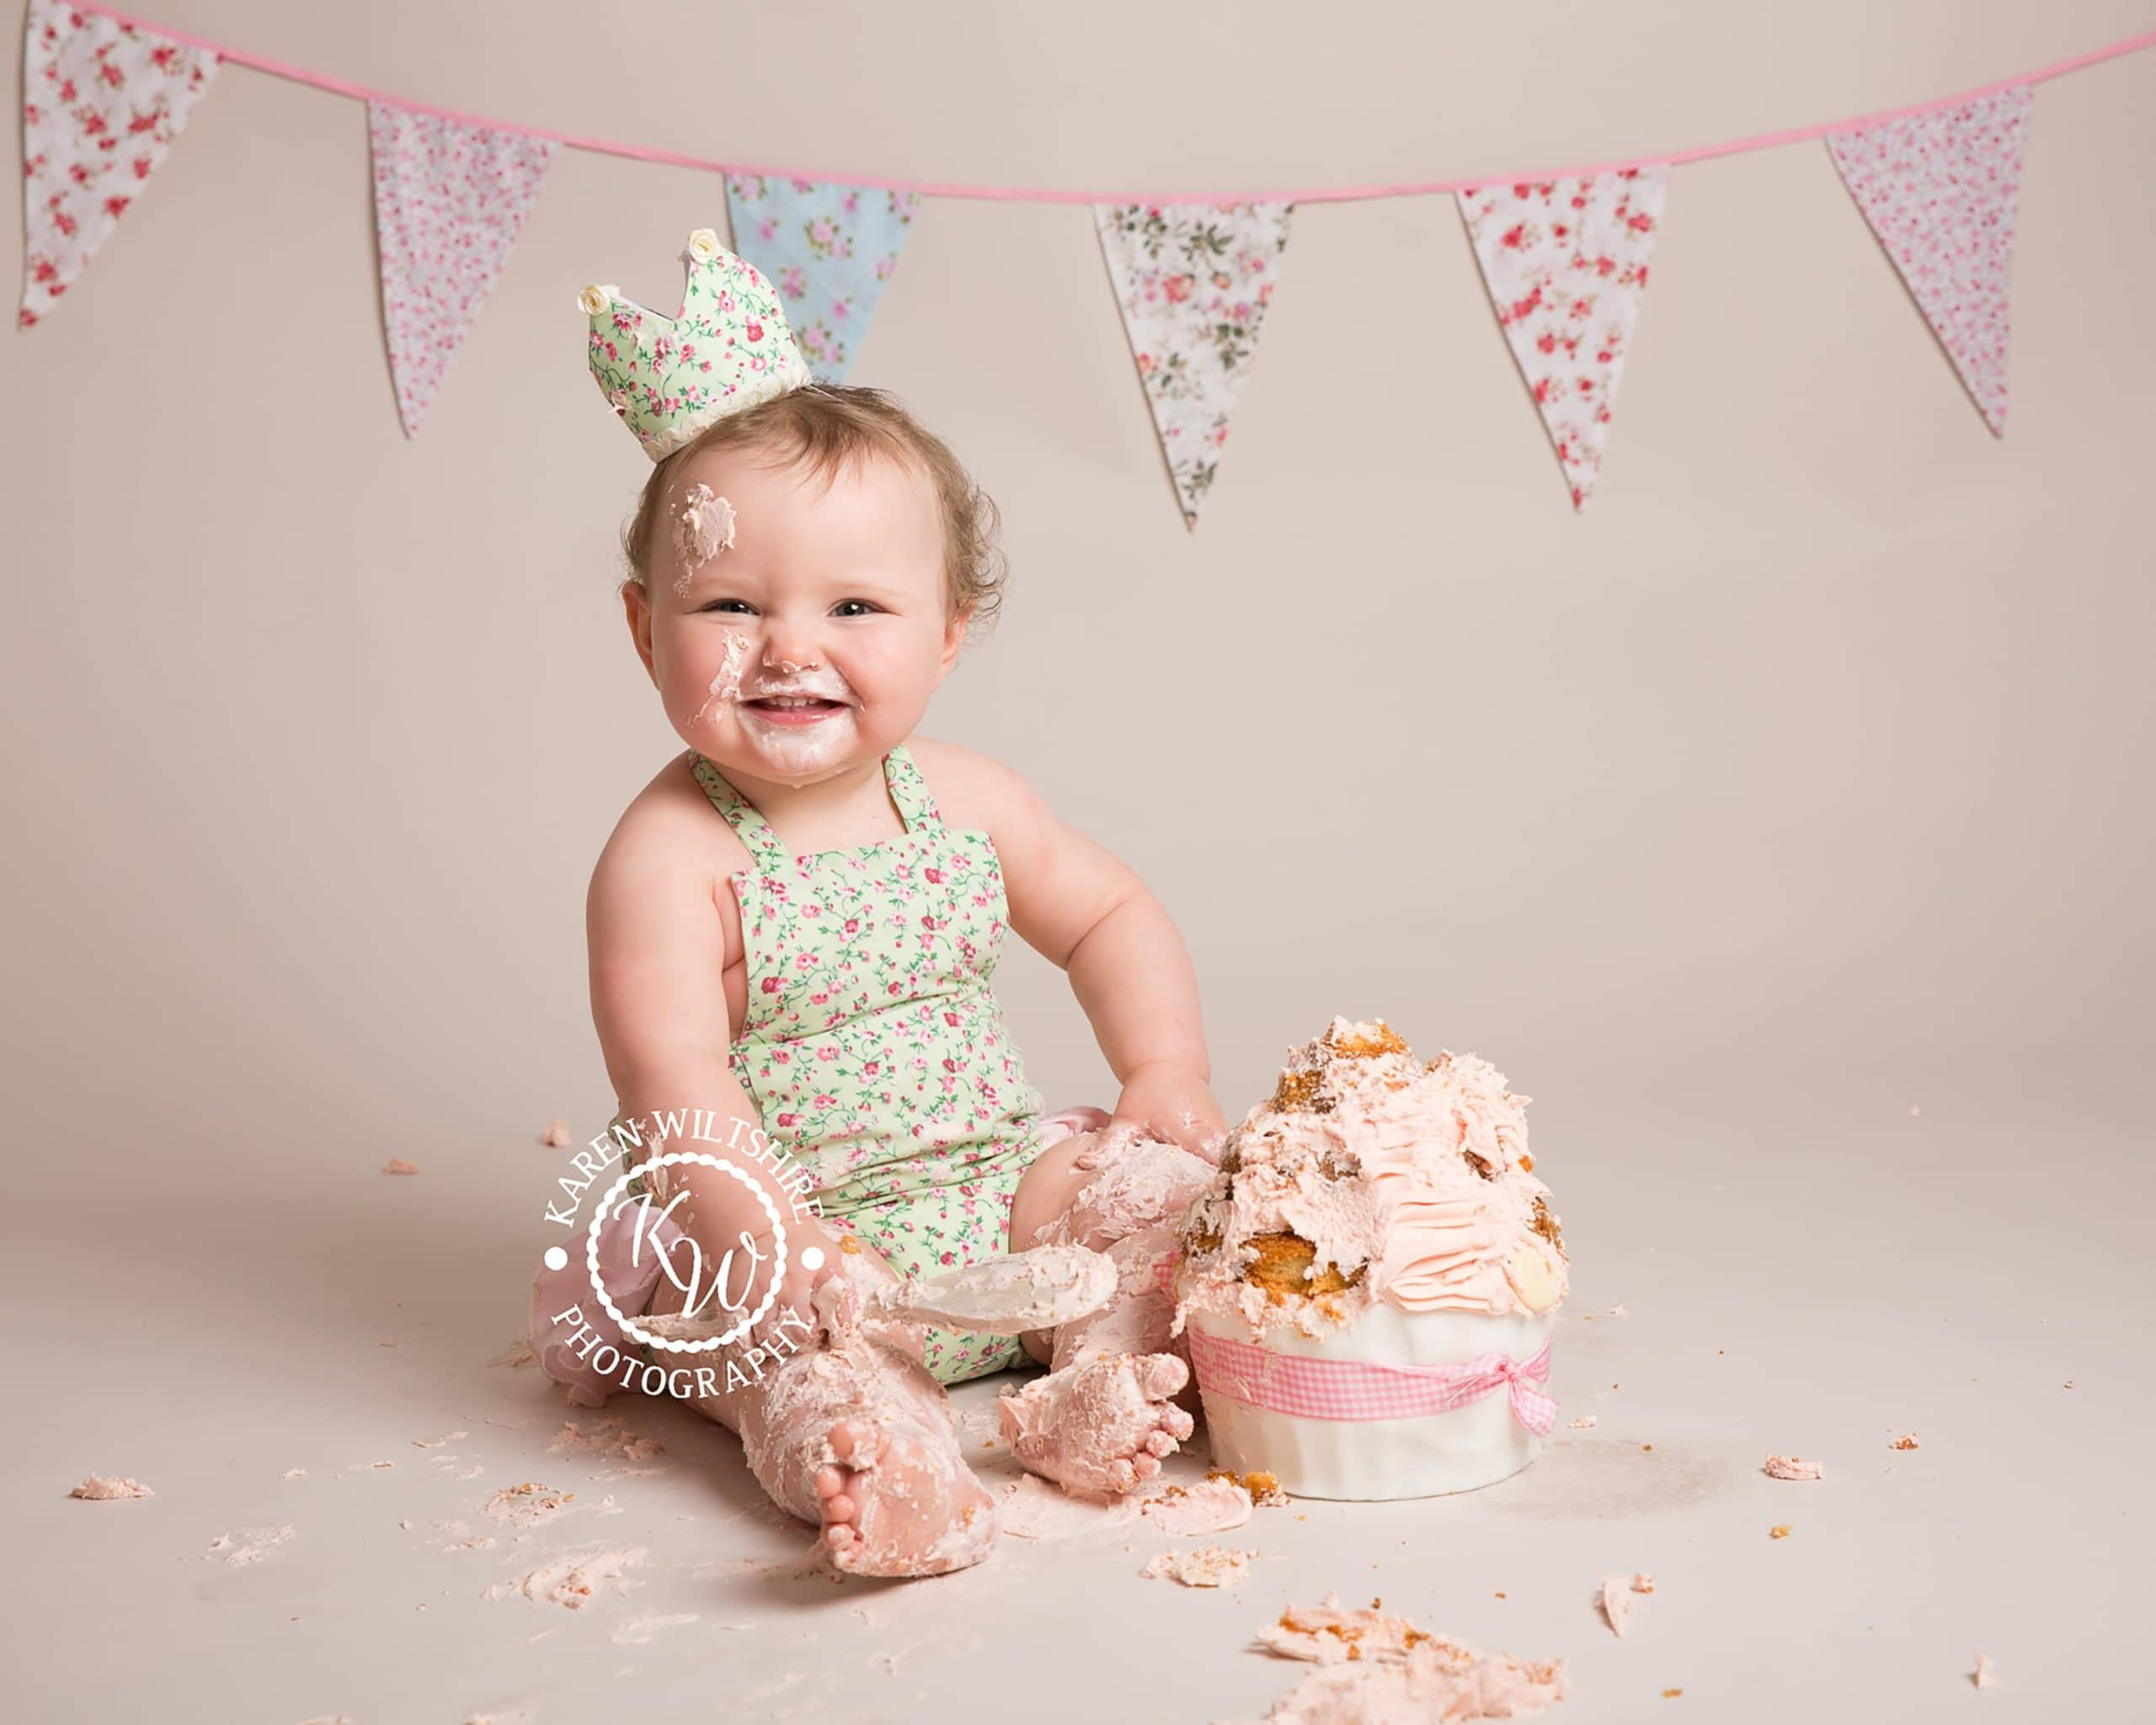 Baby girl smiling at the camera with her birthday cake